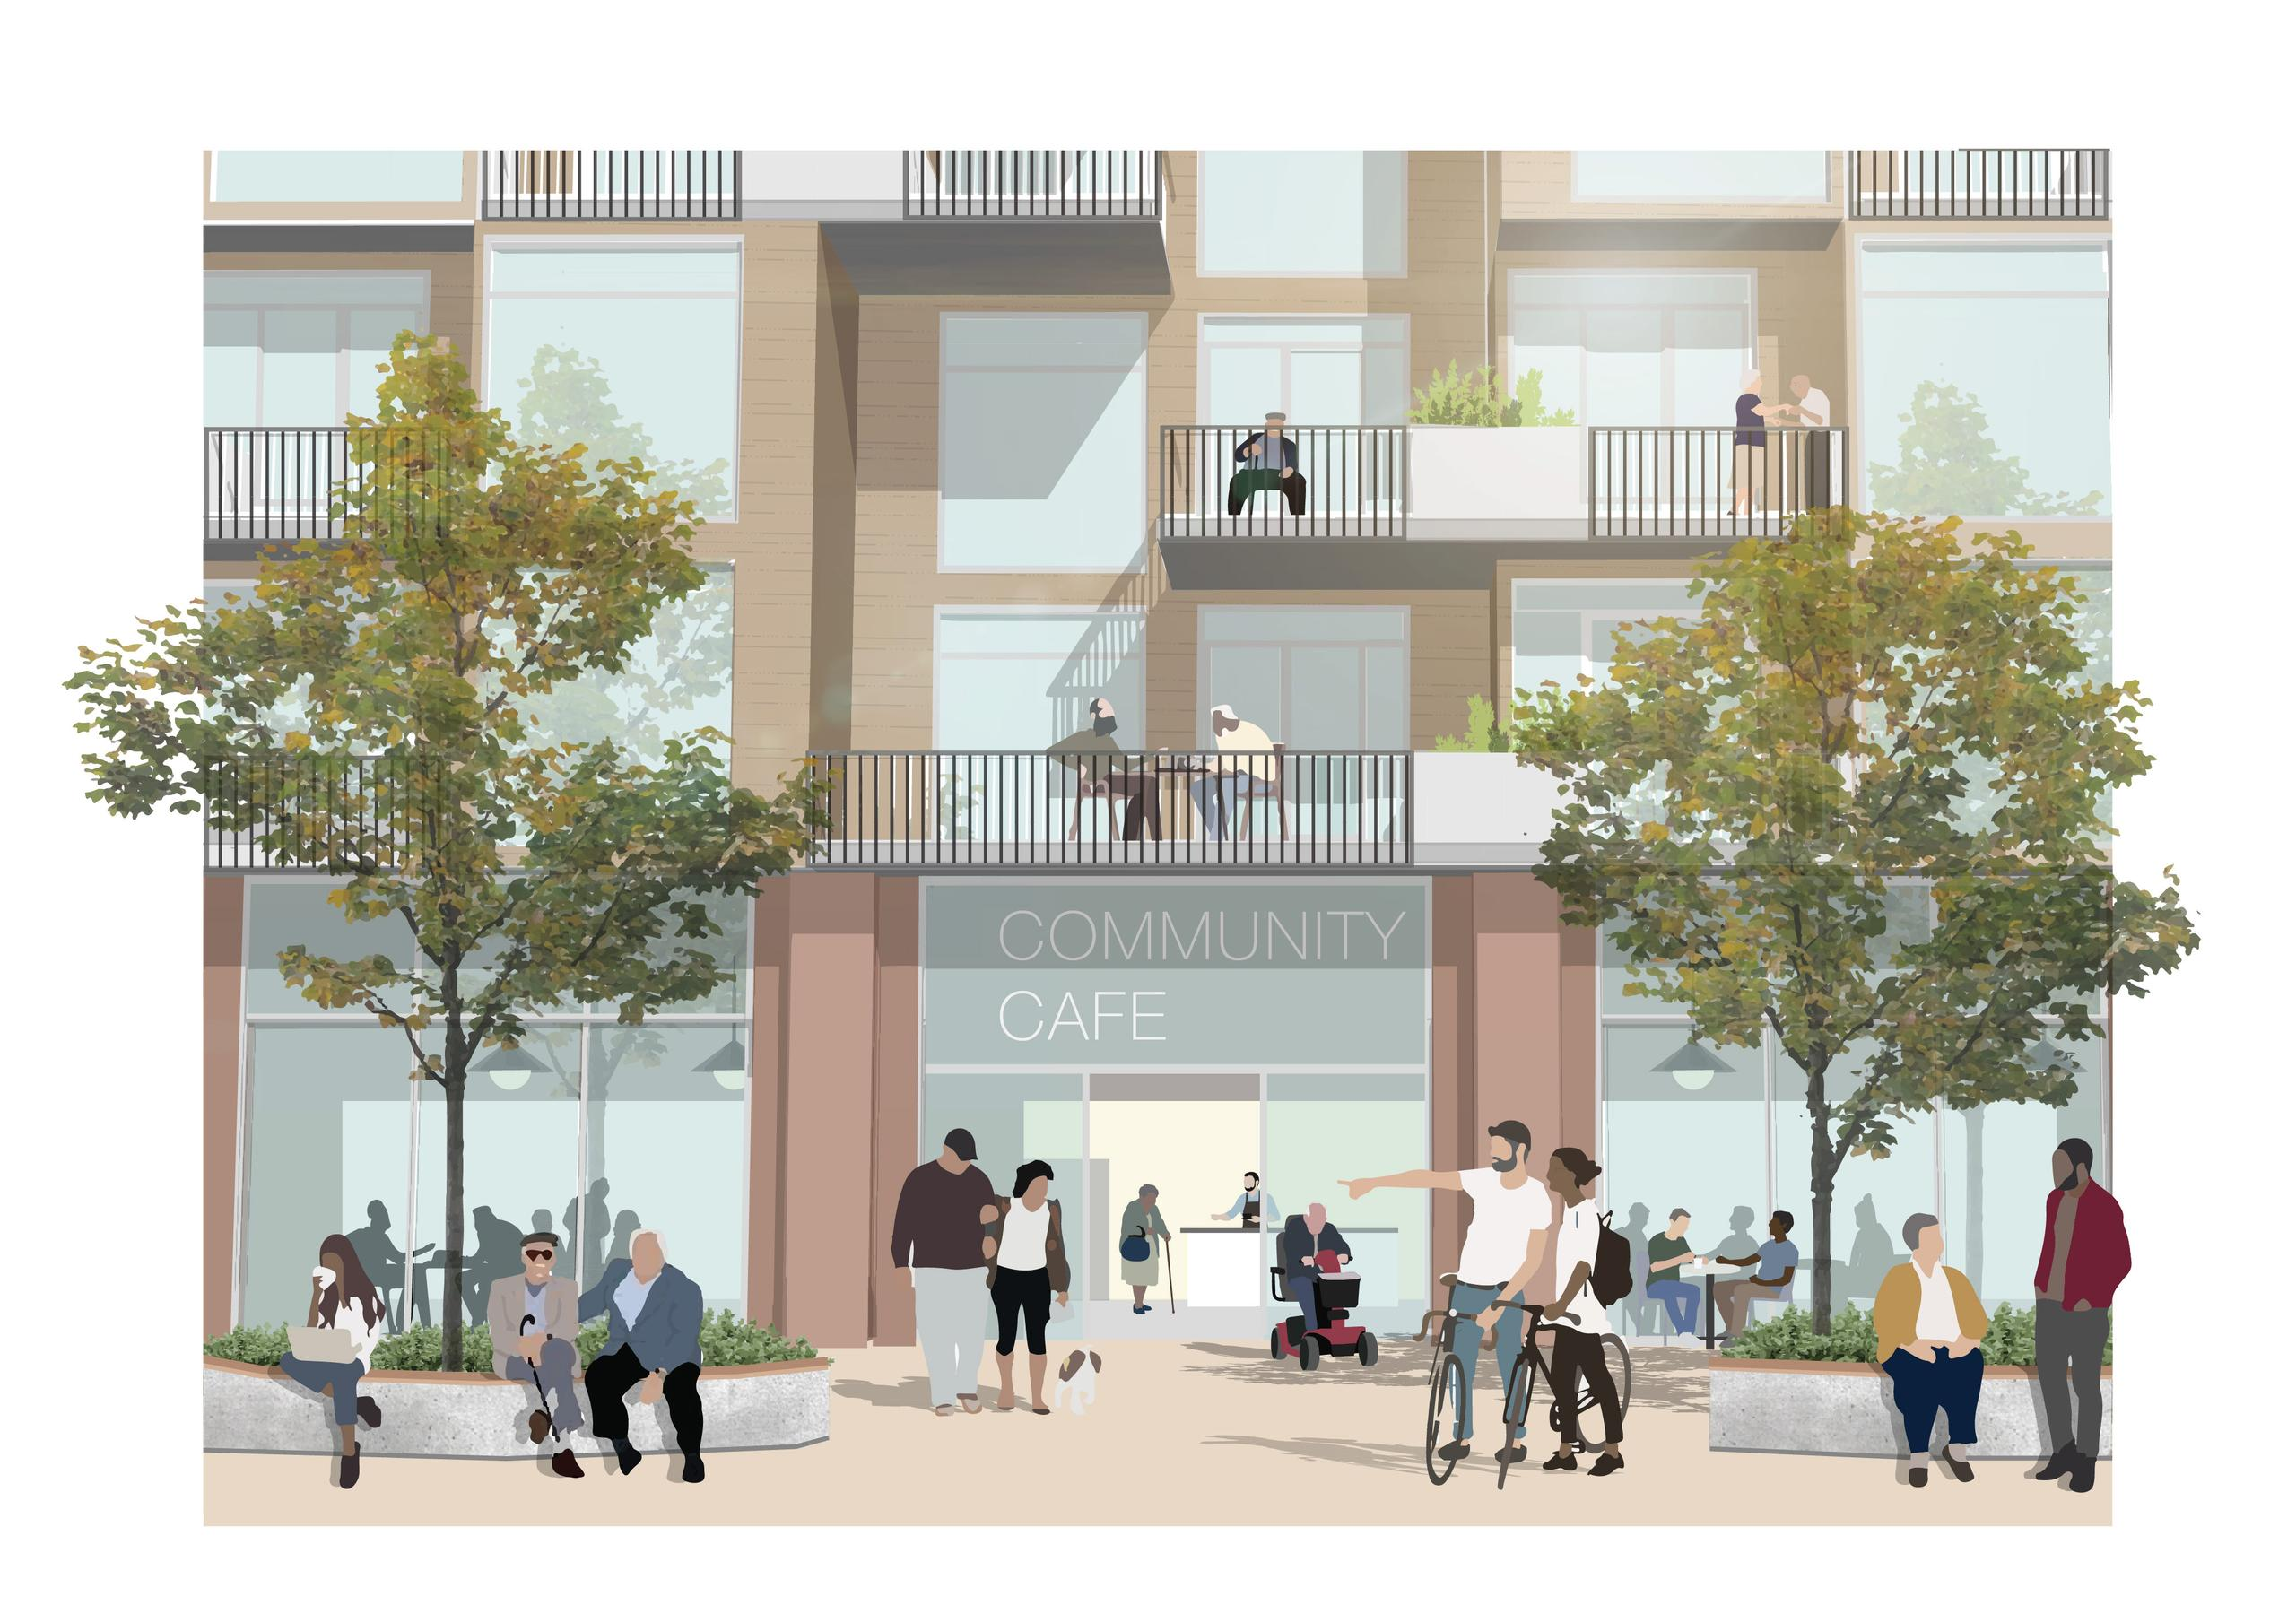 """rendering of an at-grade view of a building with planter seating and building entrance labeled """"community cafe"""" in a clearly residential building with lots of balconies and people of varying ages enjoying the public space"""